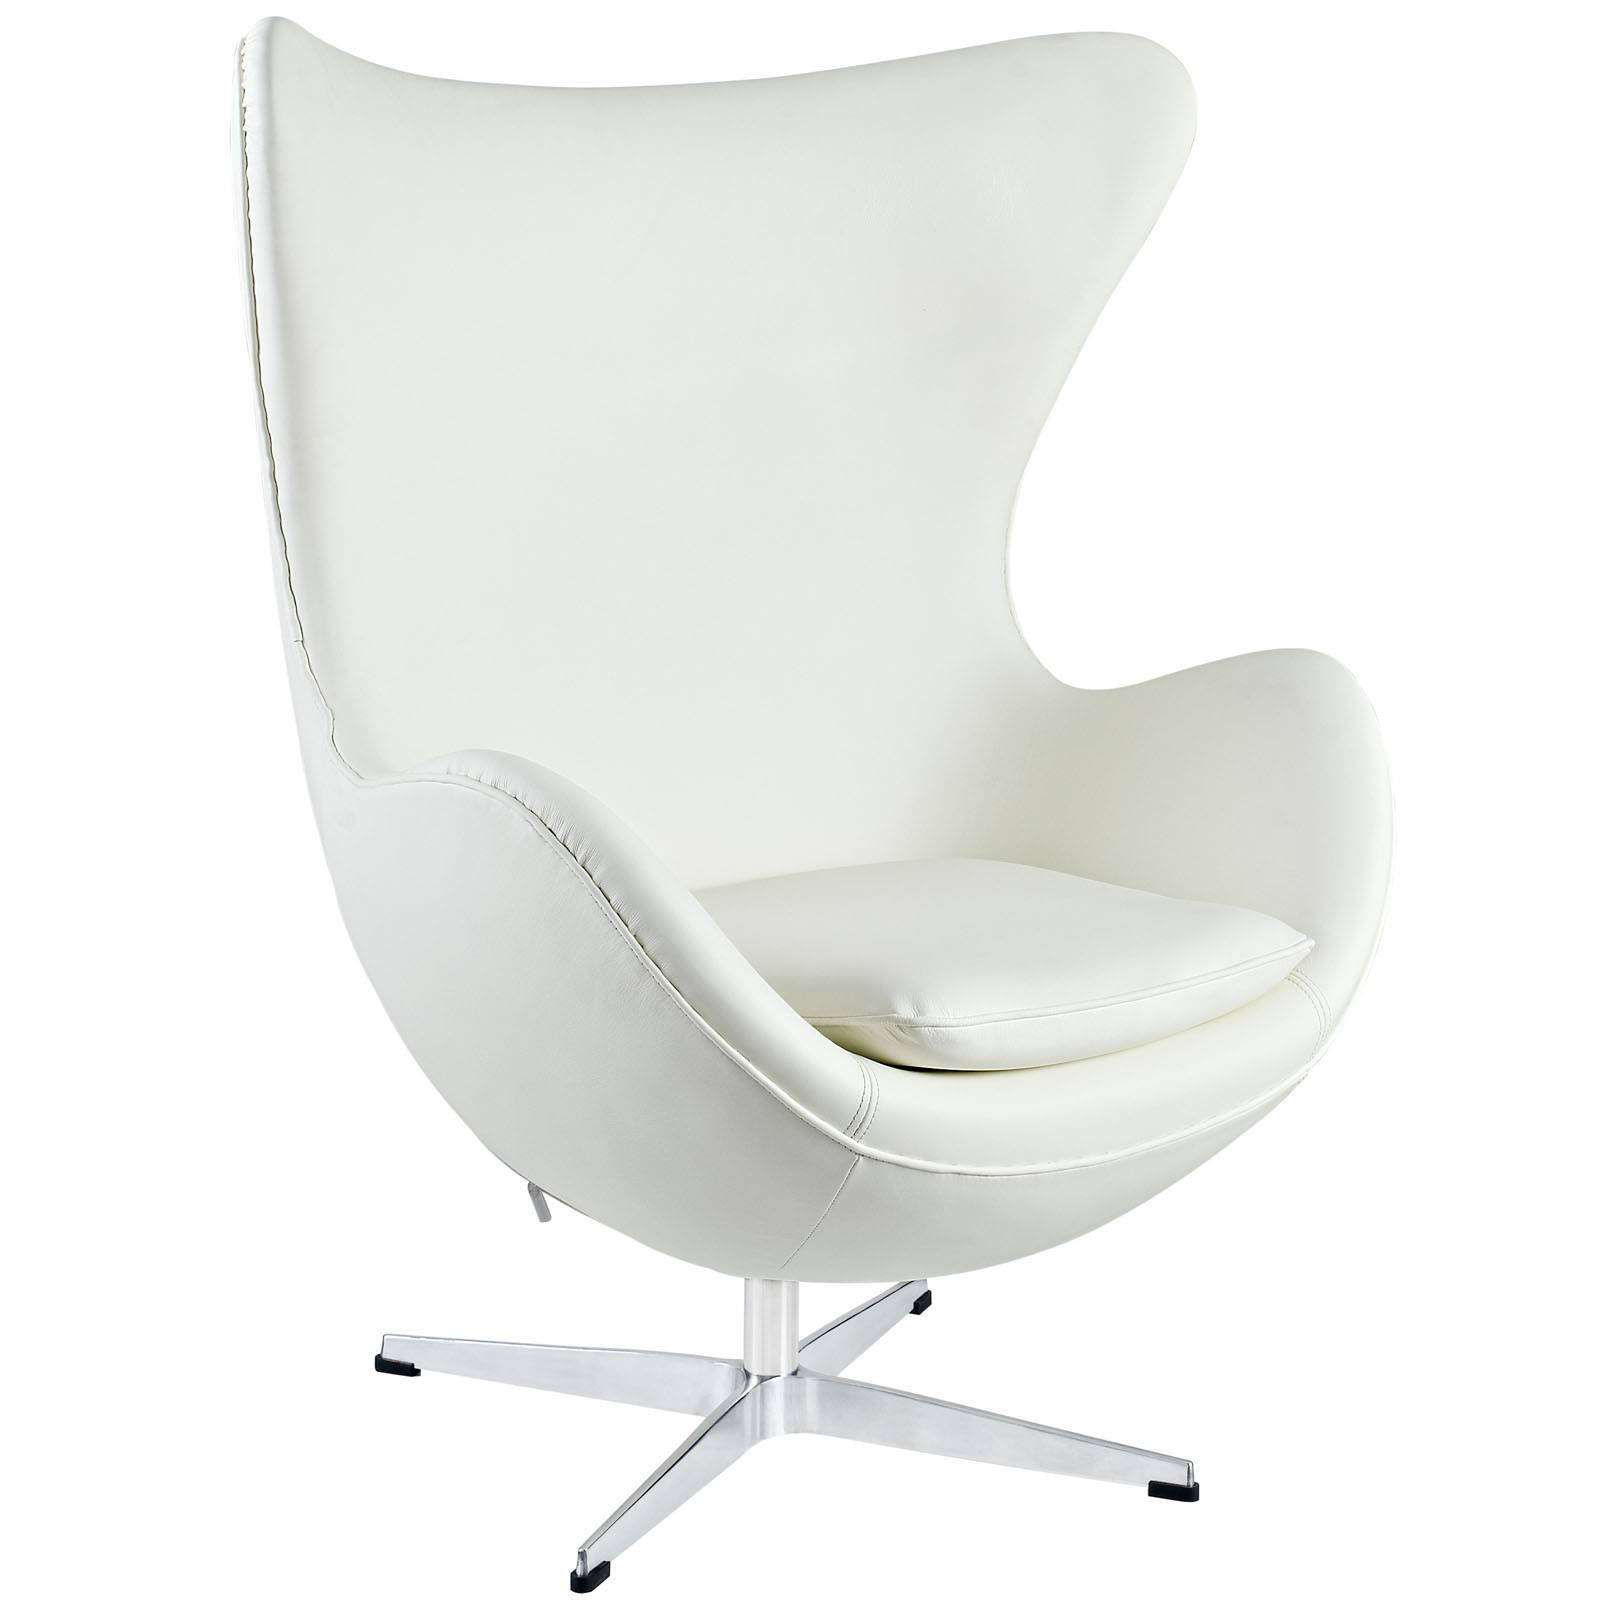 Egg chair design chairs egg arne jacobsen - Egg Chair Design Chairs Egg Arne Jacobsen 55